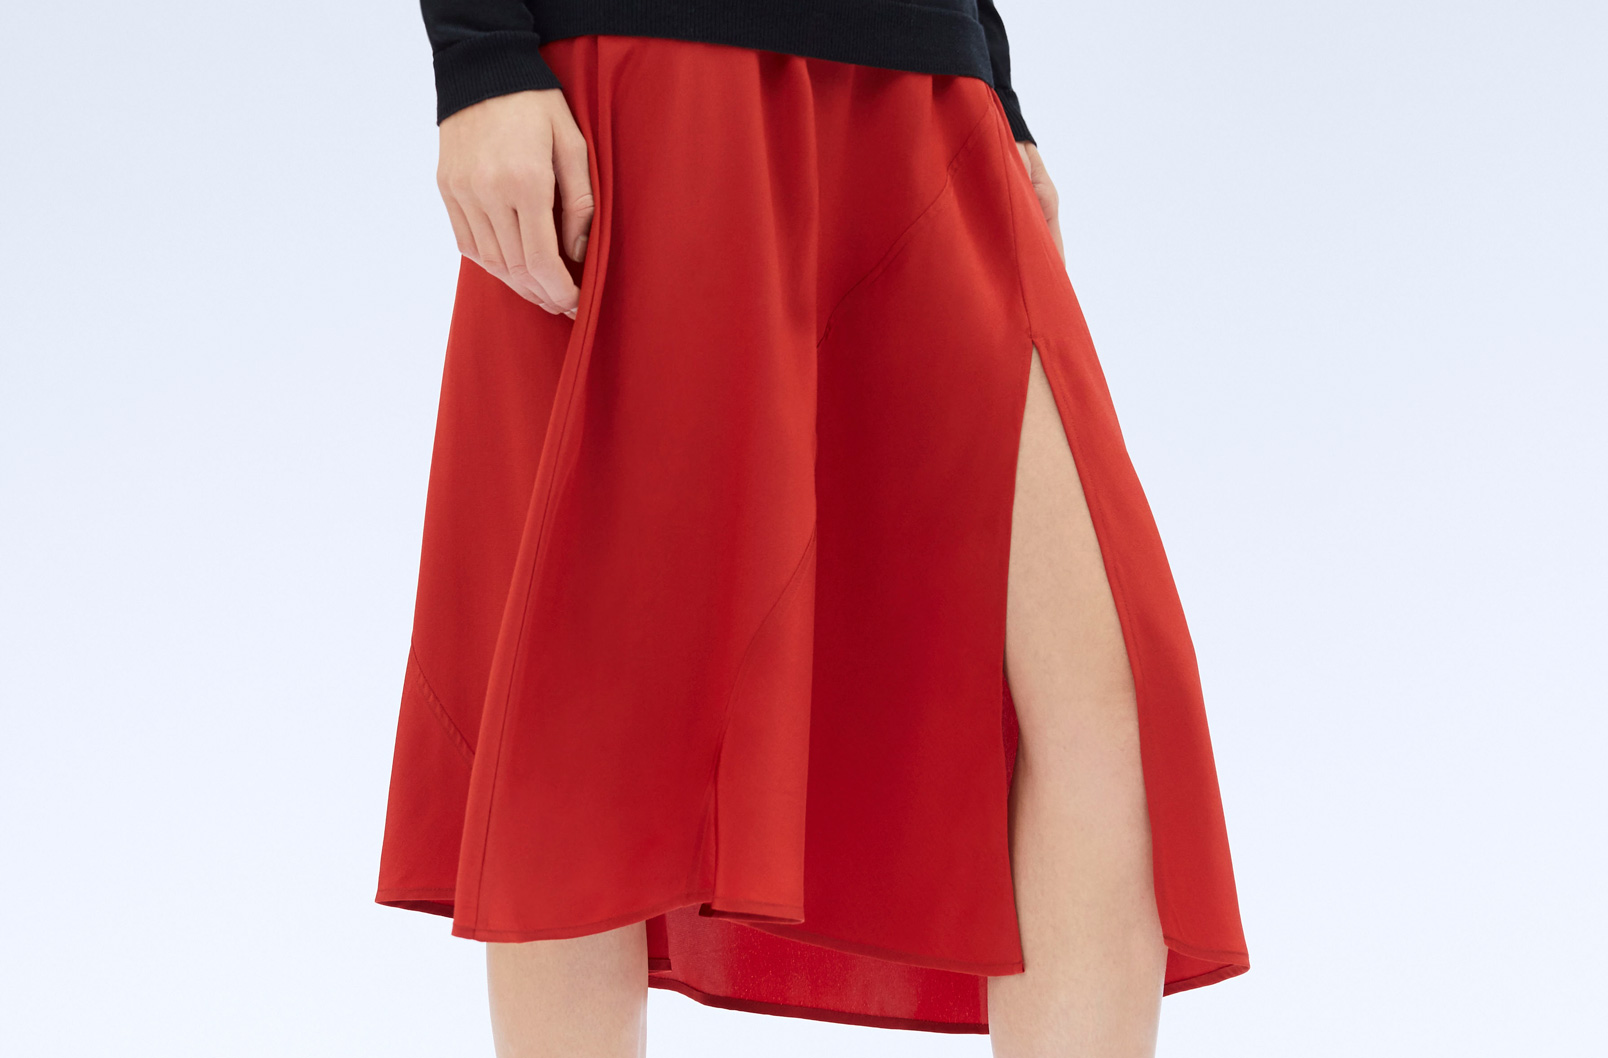 Detail image showing slit on Silk Asymmetrical Skirt